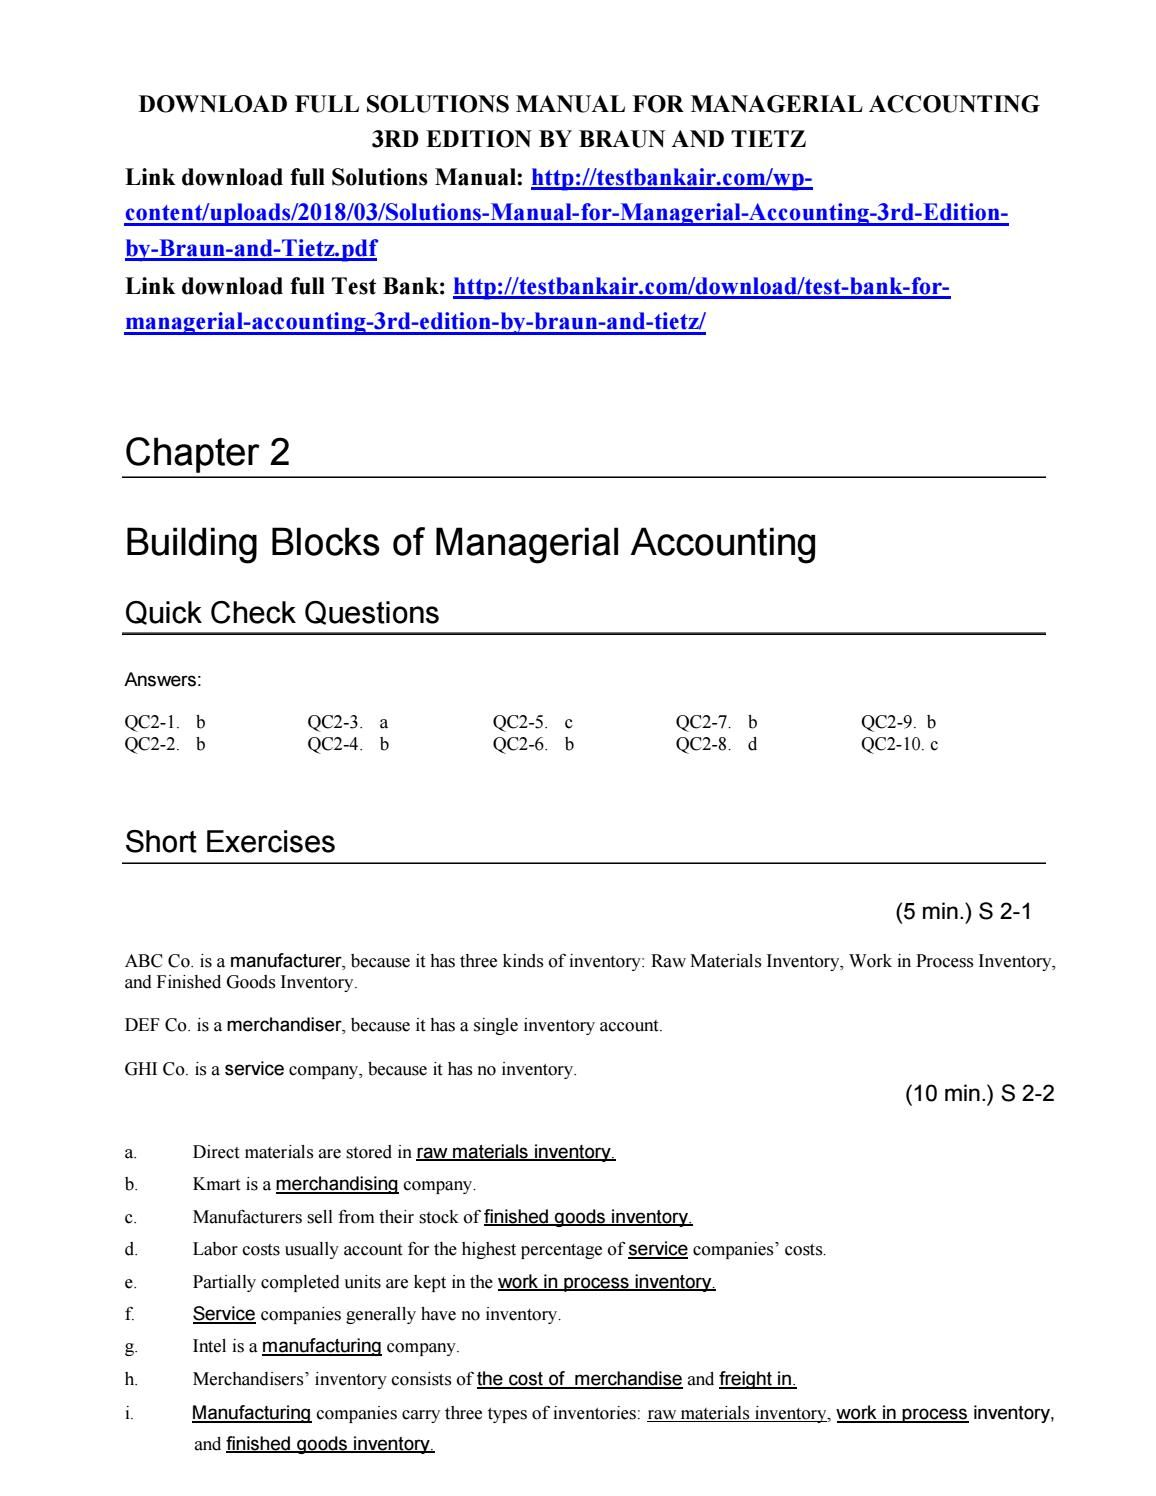 Download solutions manual for managerial accounting 3rd edition by braun  and tietz